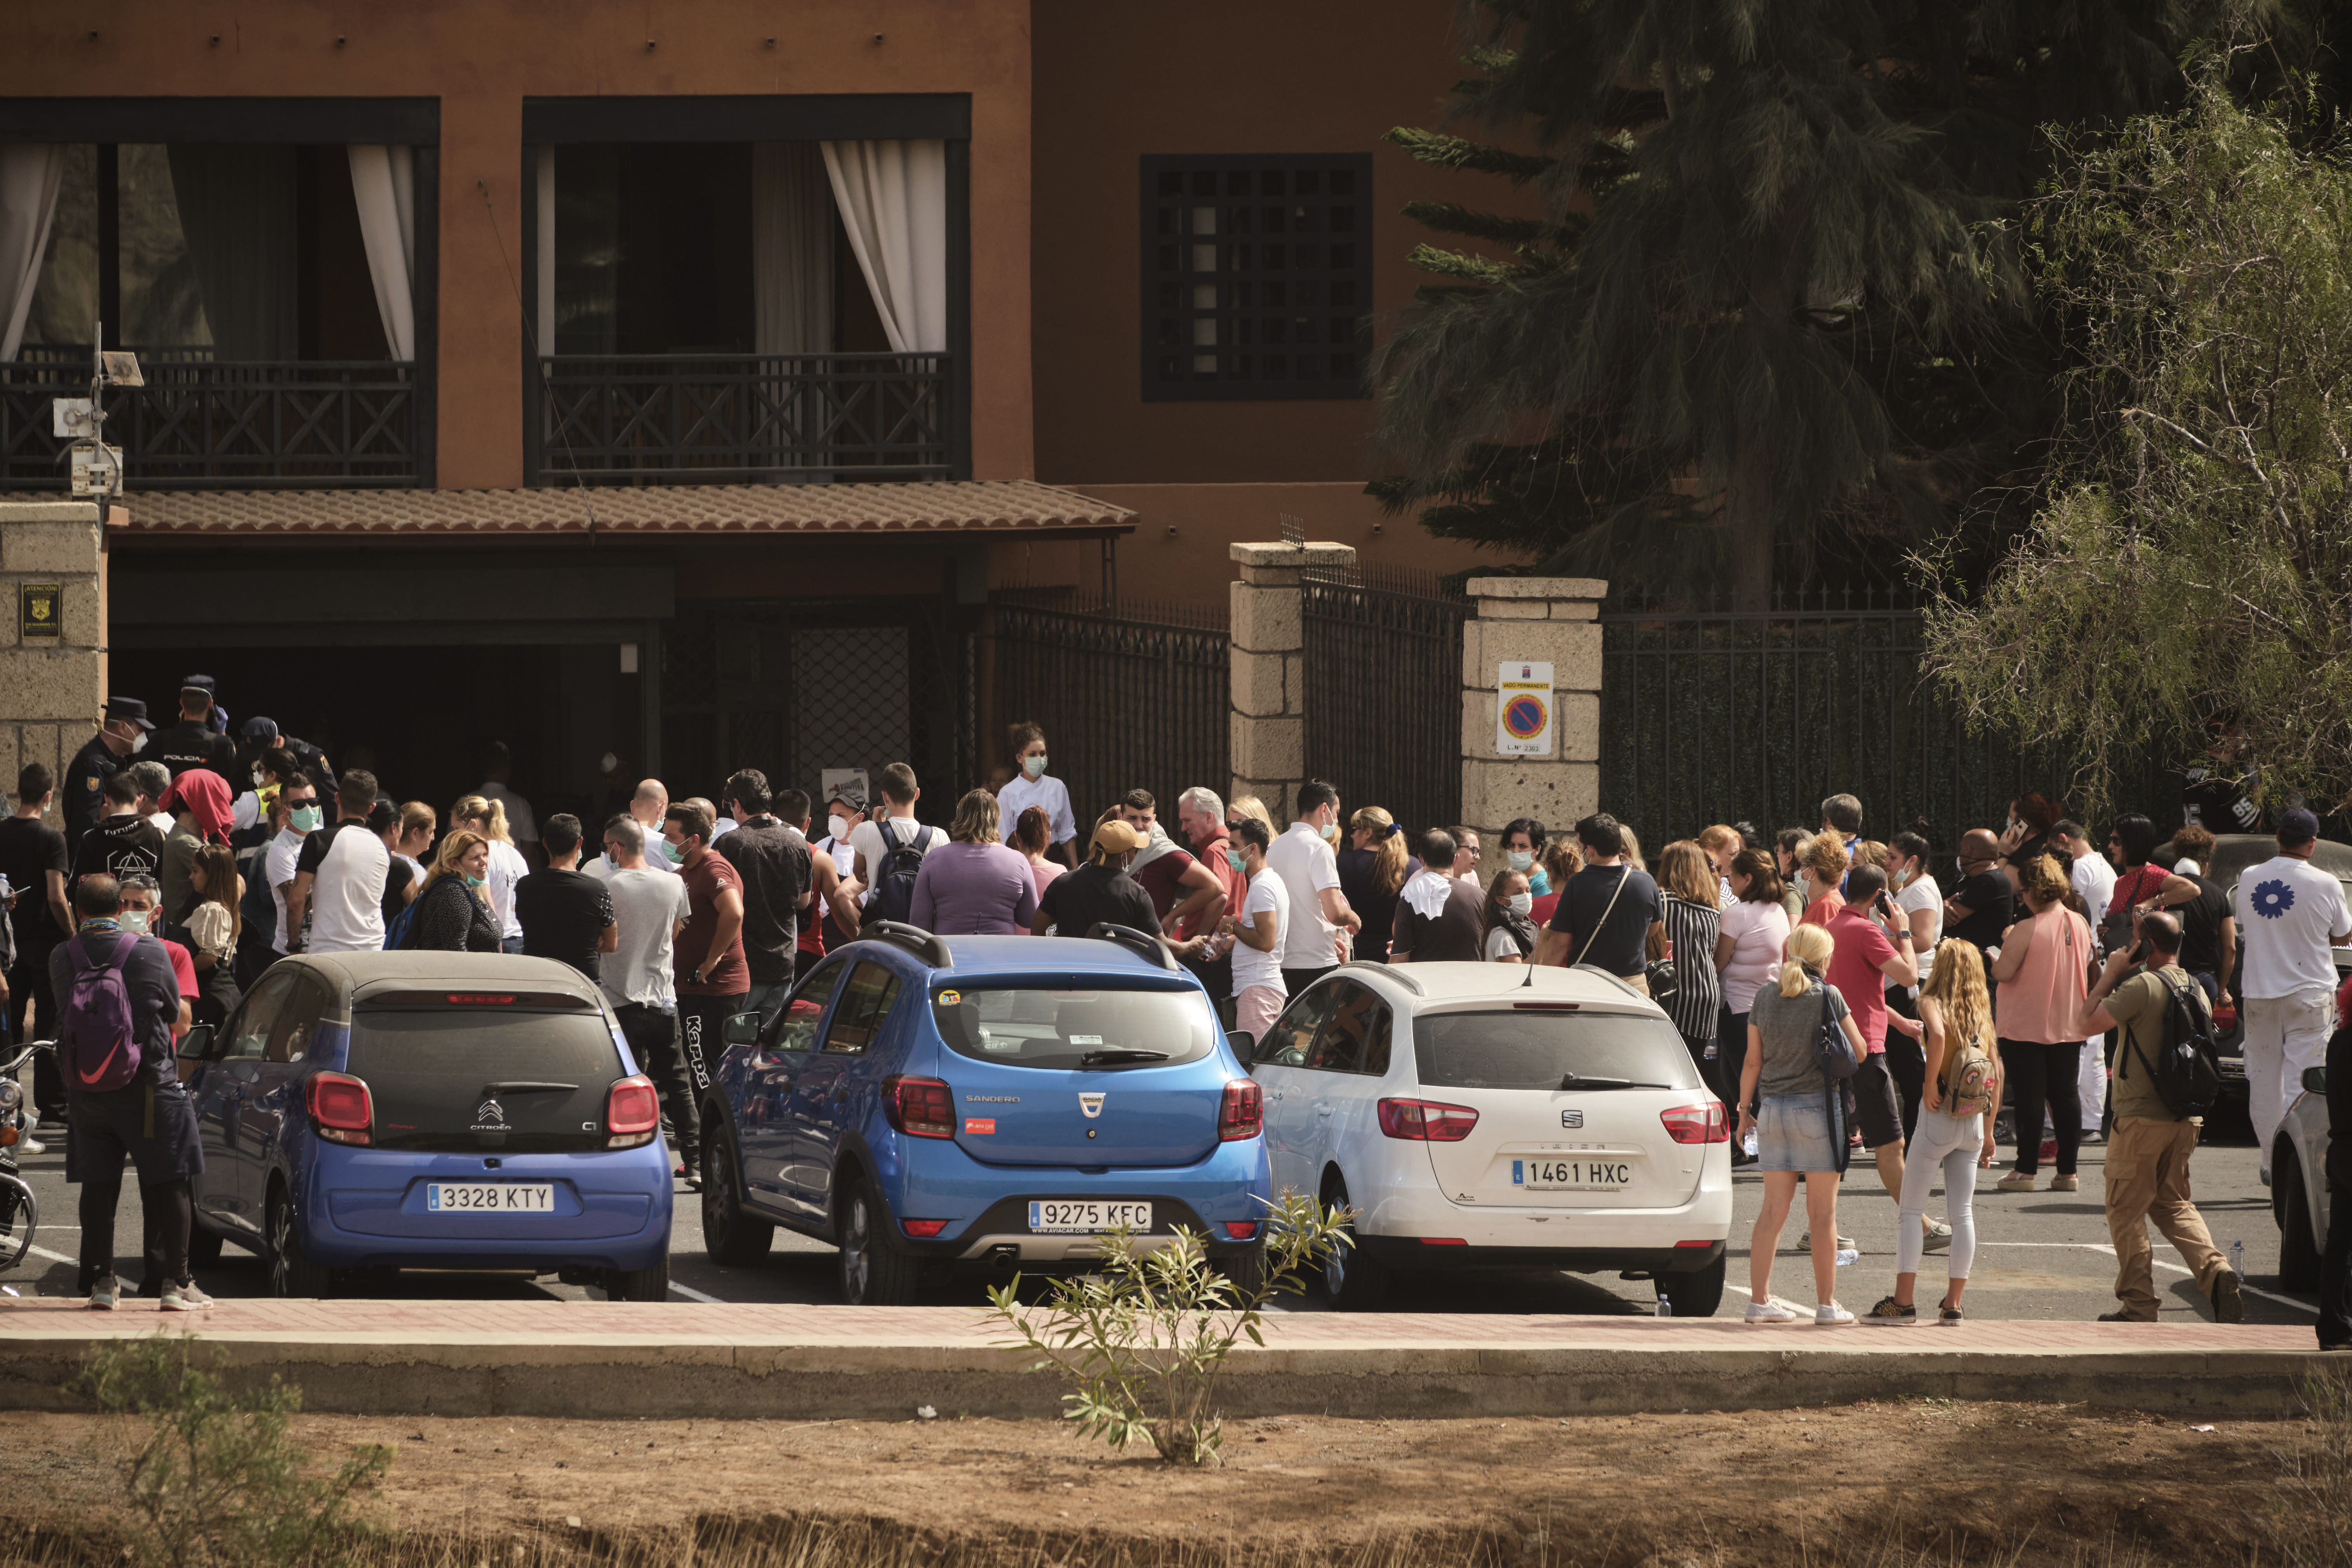 Hotel workers queue to get tested at the H10 Costa Adeje Palace hotel in the Canary Island of Tenerife, Spain, Tuesday, Feb. 25, 2020. Spanish officials say a tourist hotel on the Canary Island of Tenerife has been placed in quarantine after an Italian doctor staying there tested positive for the COVID-19 virus and Spanish news media says some 1,000 tourists staying at the complex are not allowed to leave. (AP Photo)